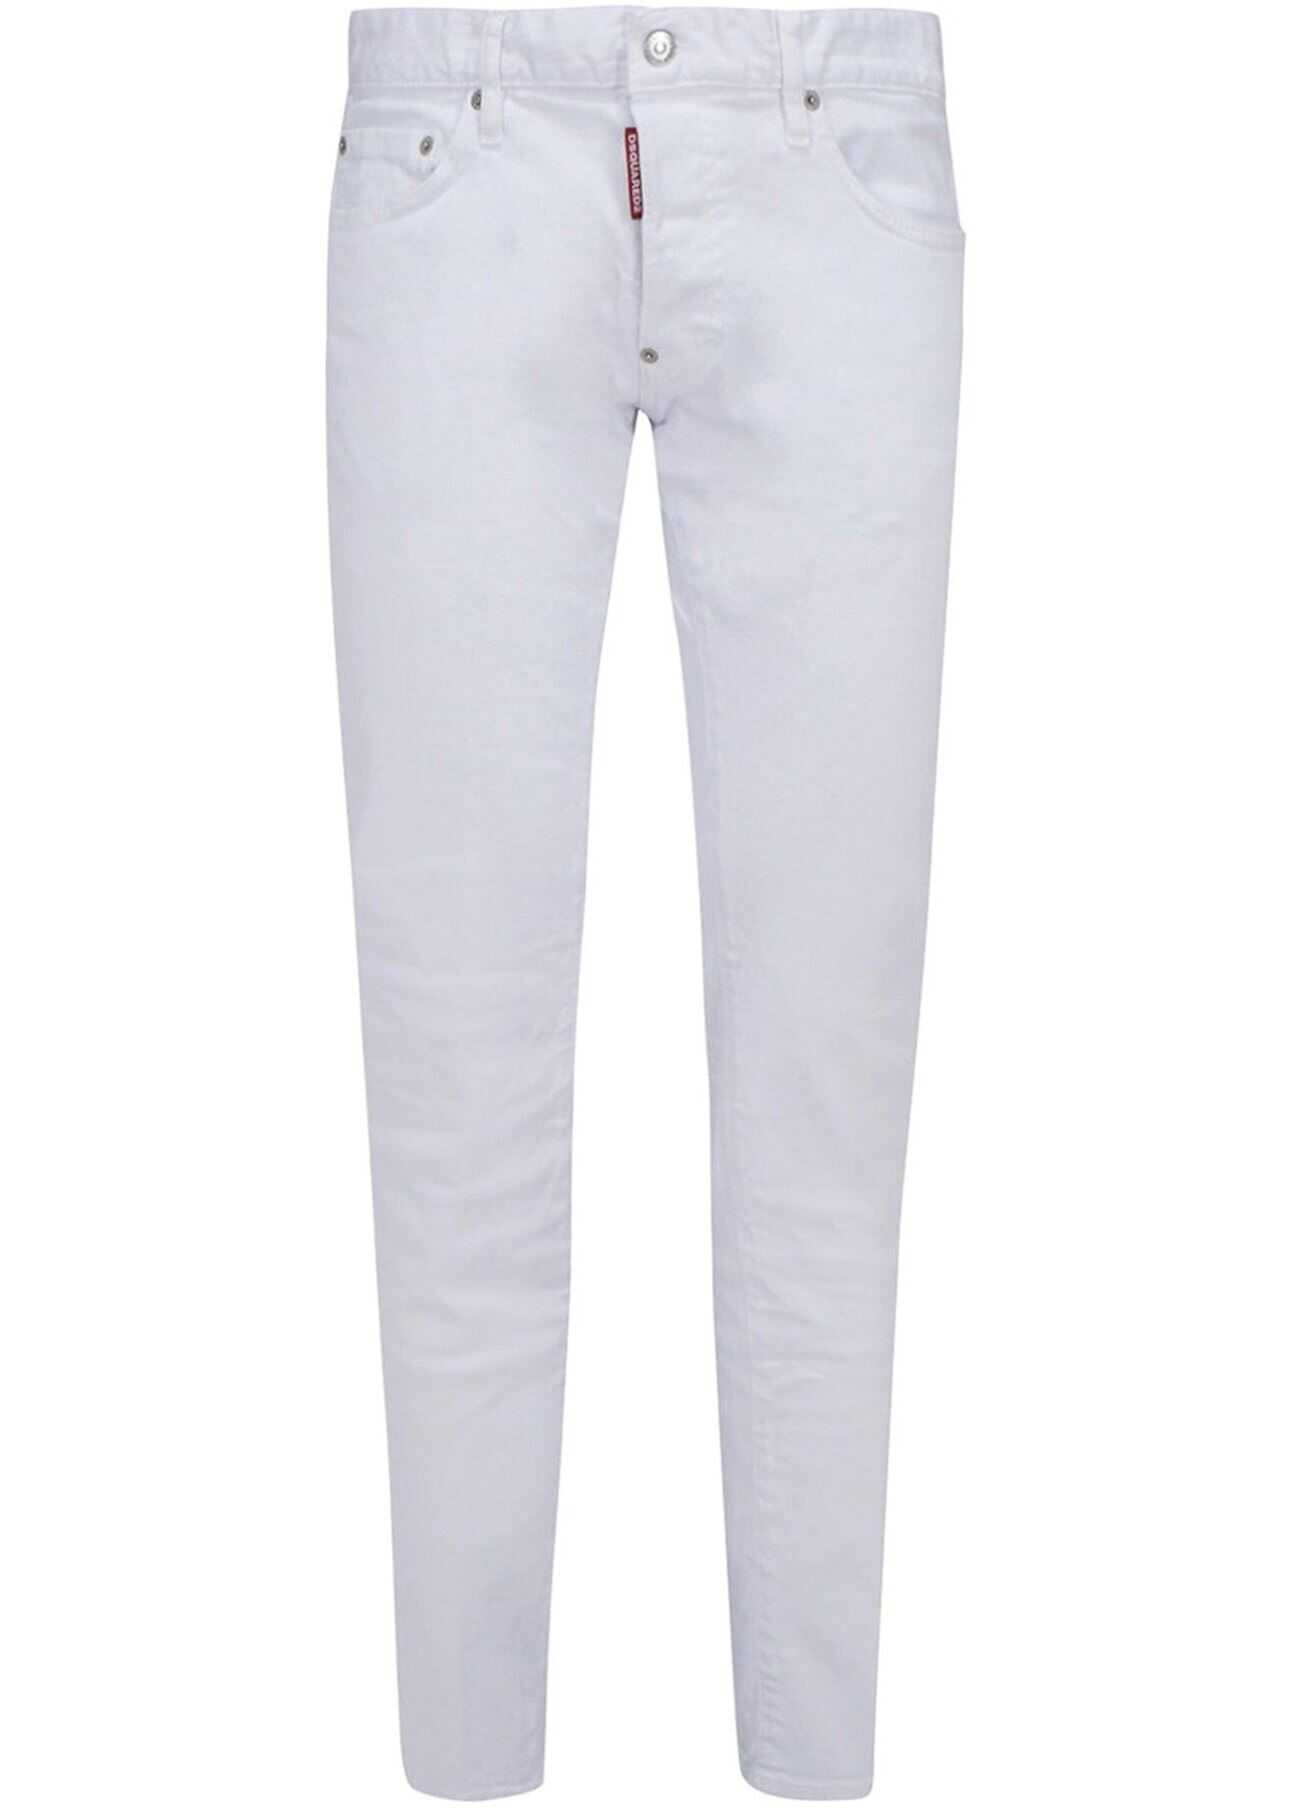 DSQUARED2 Dan White Skinny Jeans White imagine